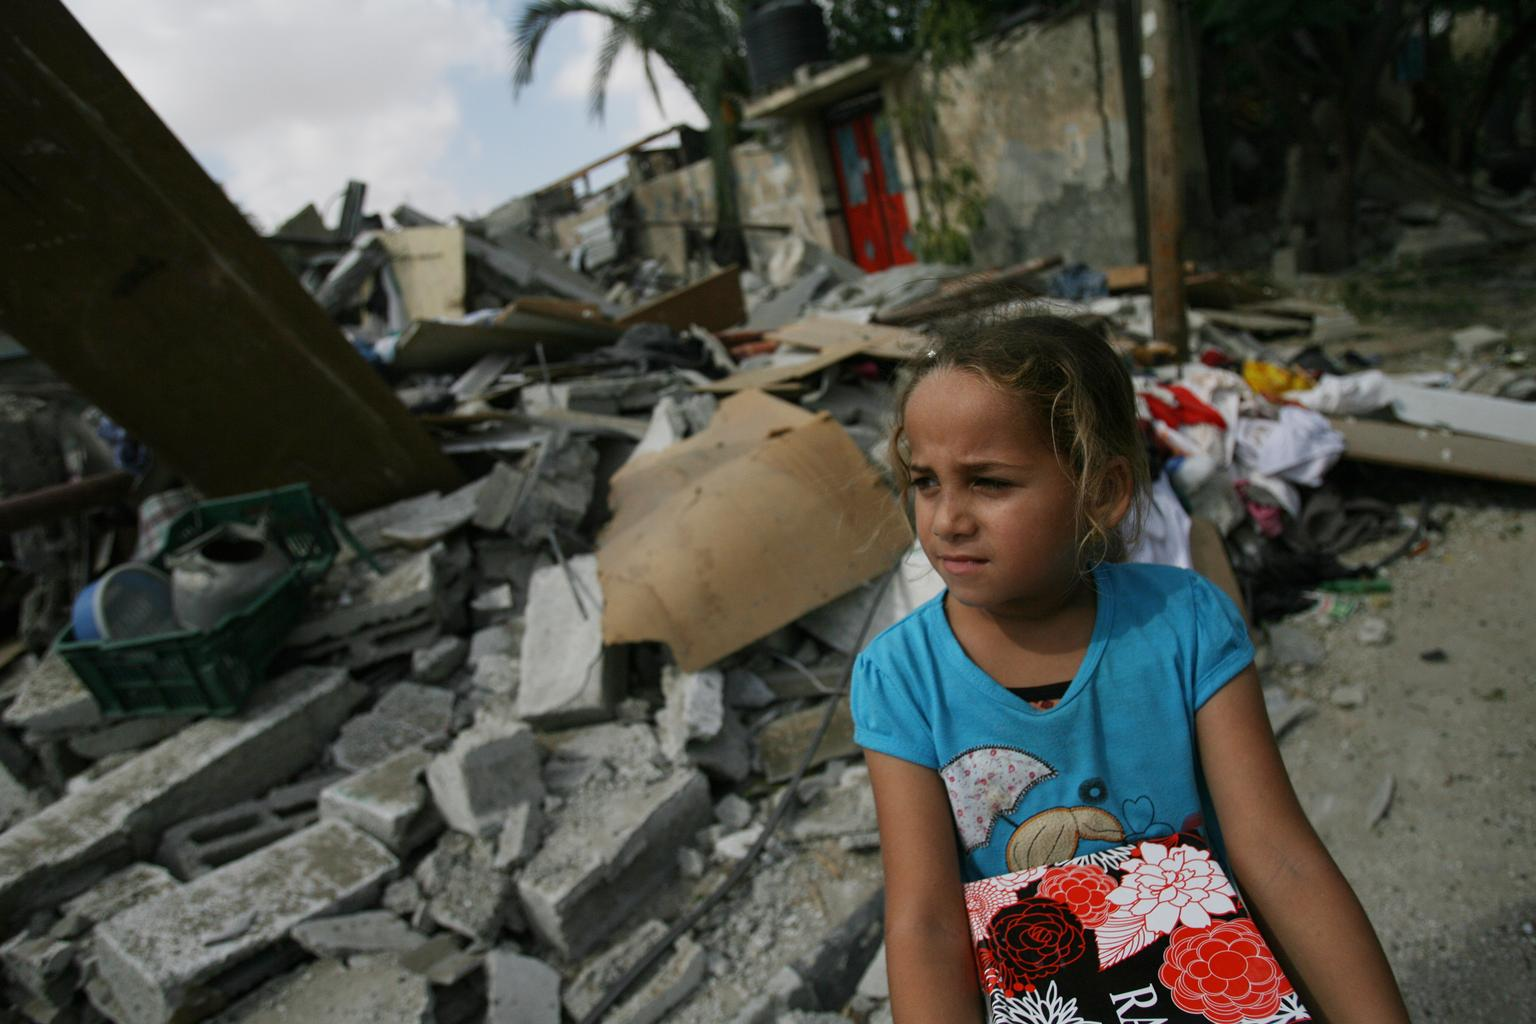 On 5 August 2014 in the State of Palestine, a girl stands amid the rubble remnants of her home, in the town of Rafah in the southern Gaza Strip. © UNICEF/NYHQ2014-1124/El Baba